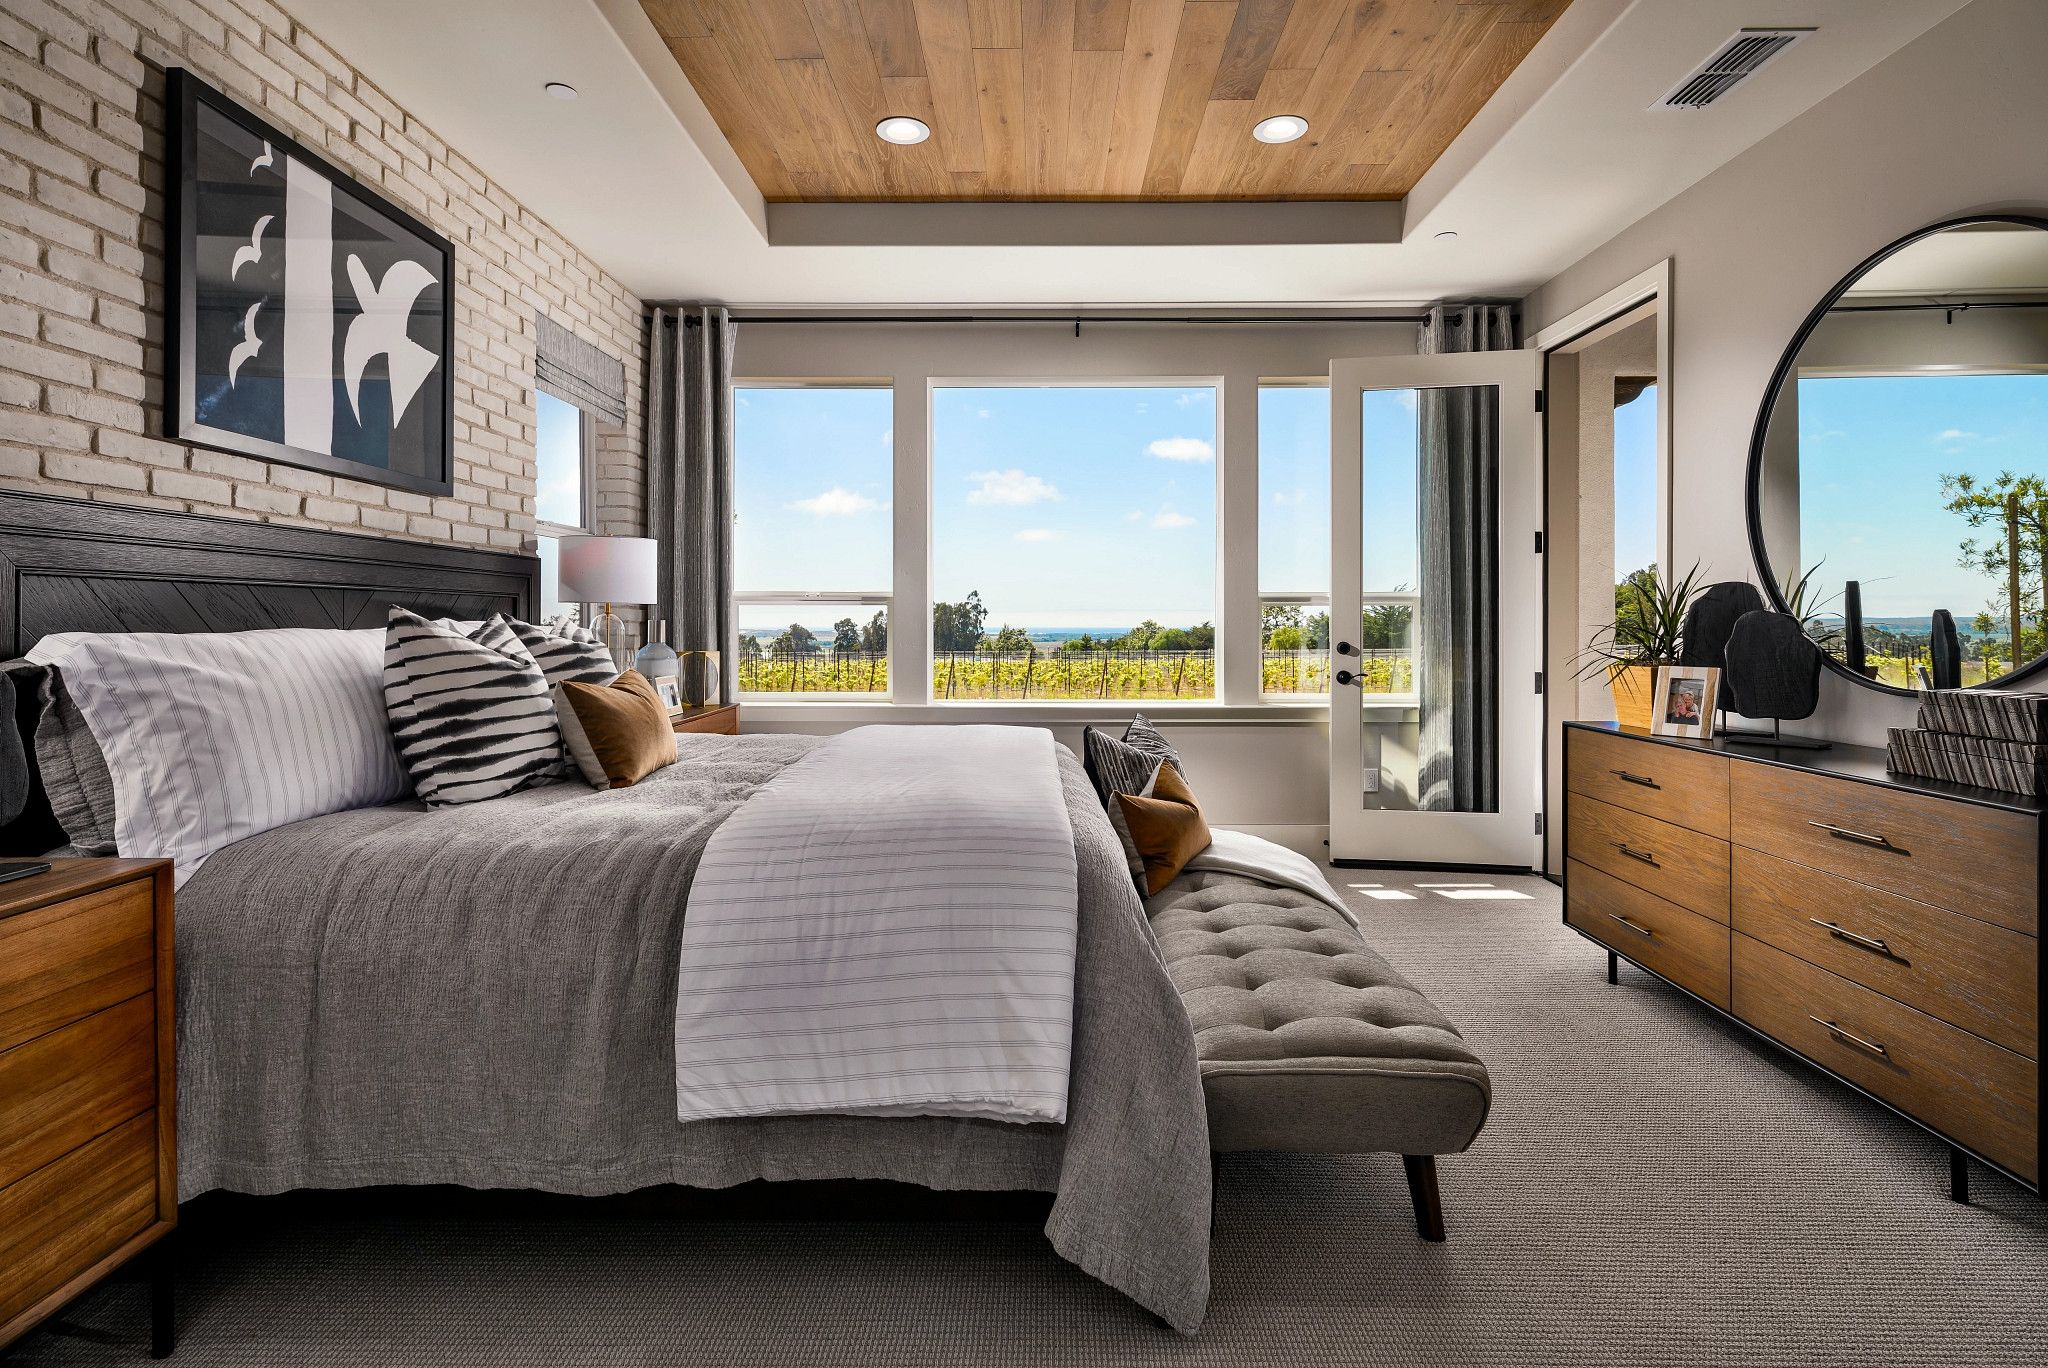 Bedroom featured in the Genova By Shea Homes - Trilogy in San Luis Obispo, CA